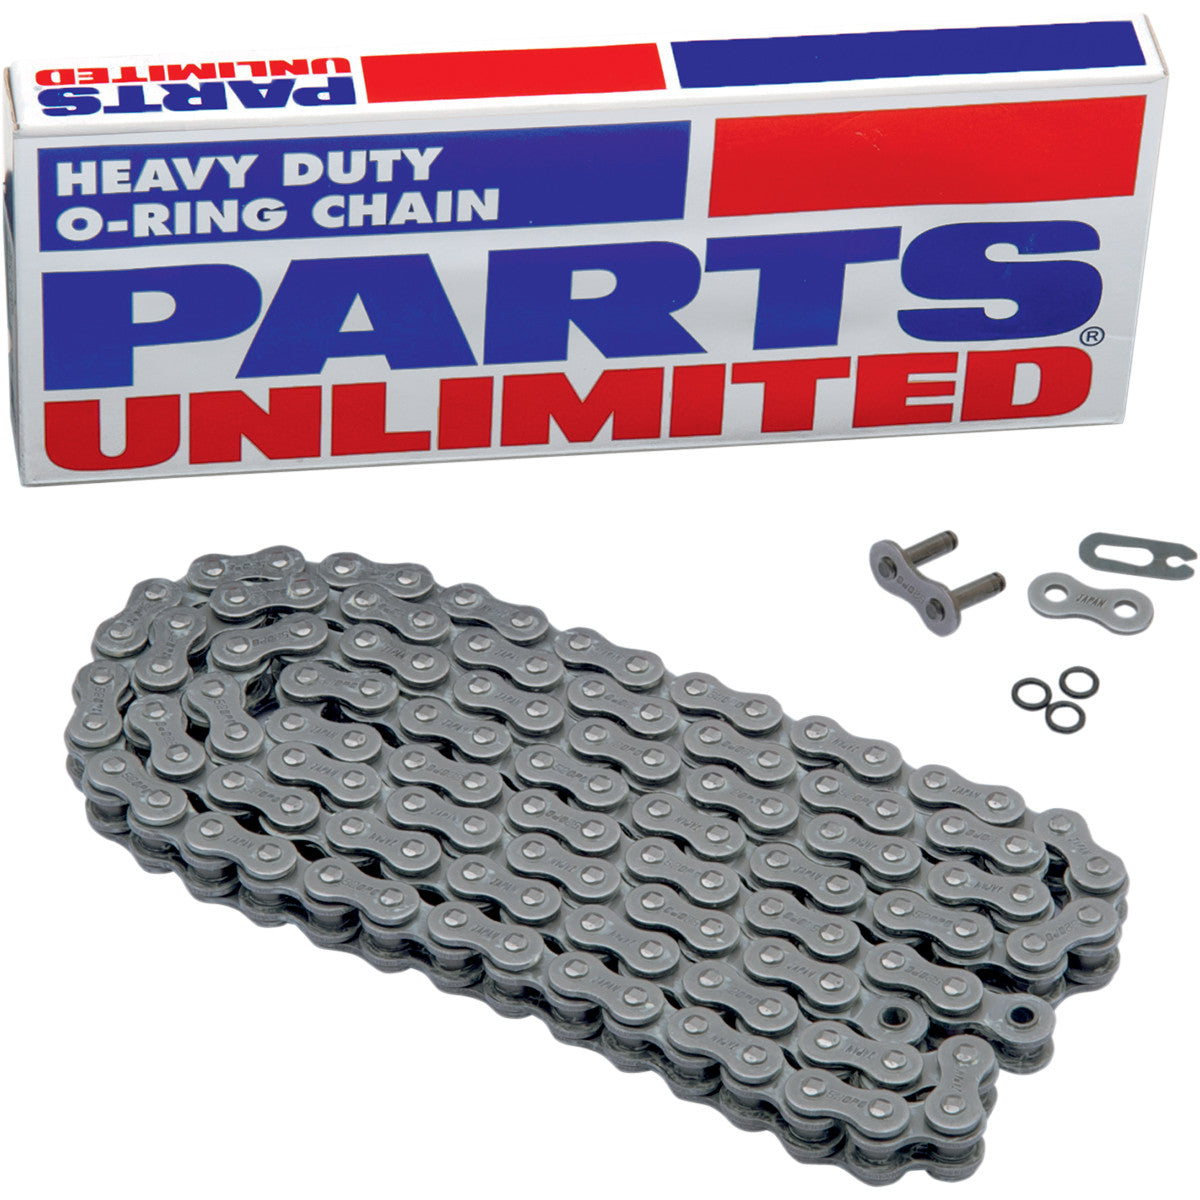 PARTS UNLIMITED-CHAIN CHAIN PU 520 O-RING X 25F